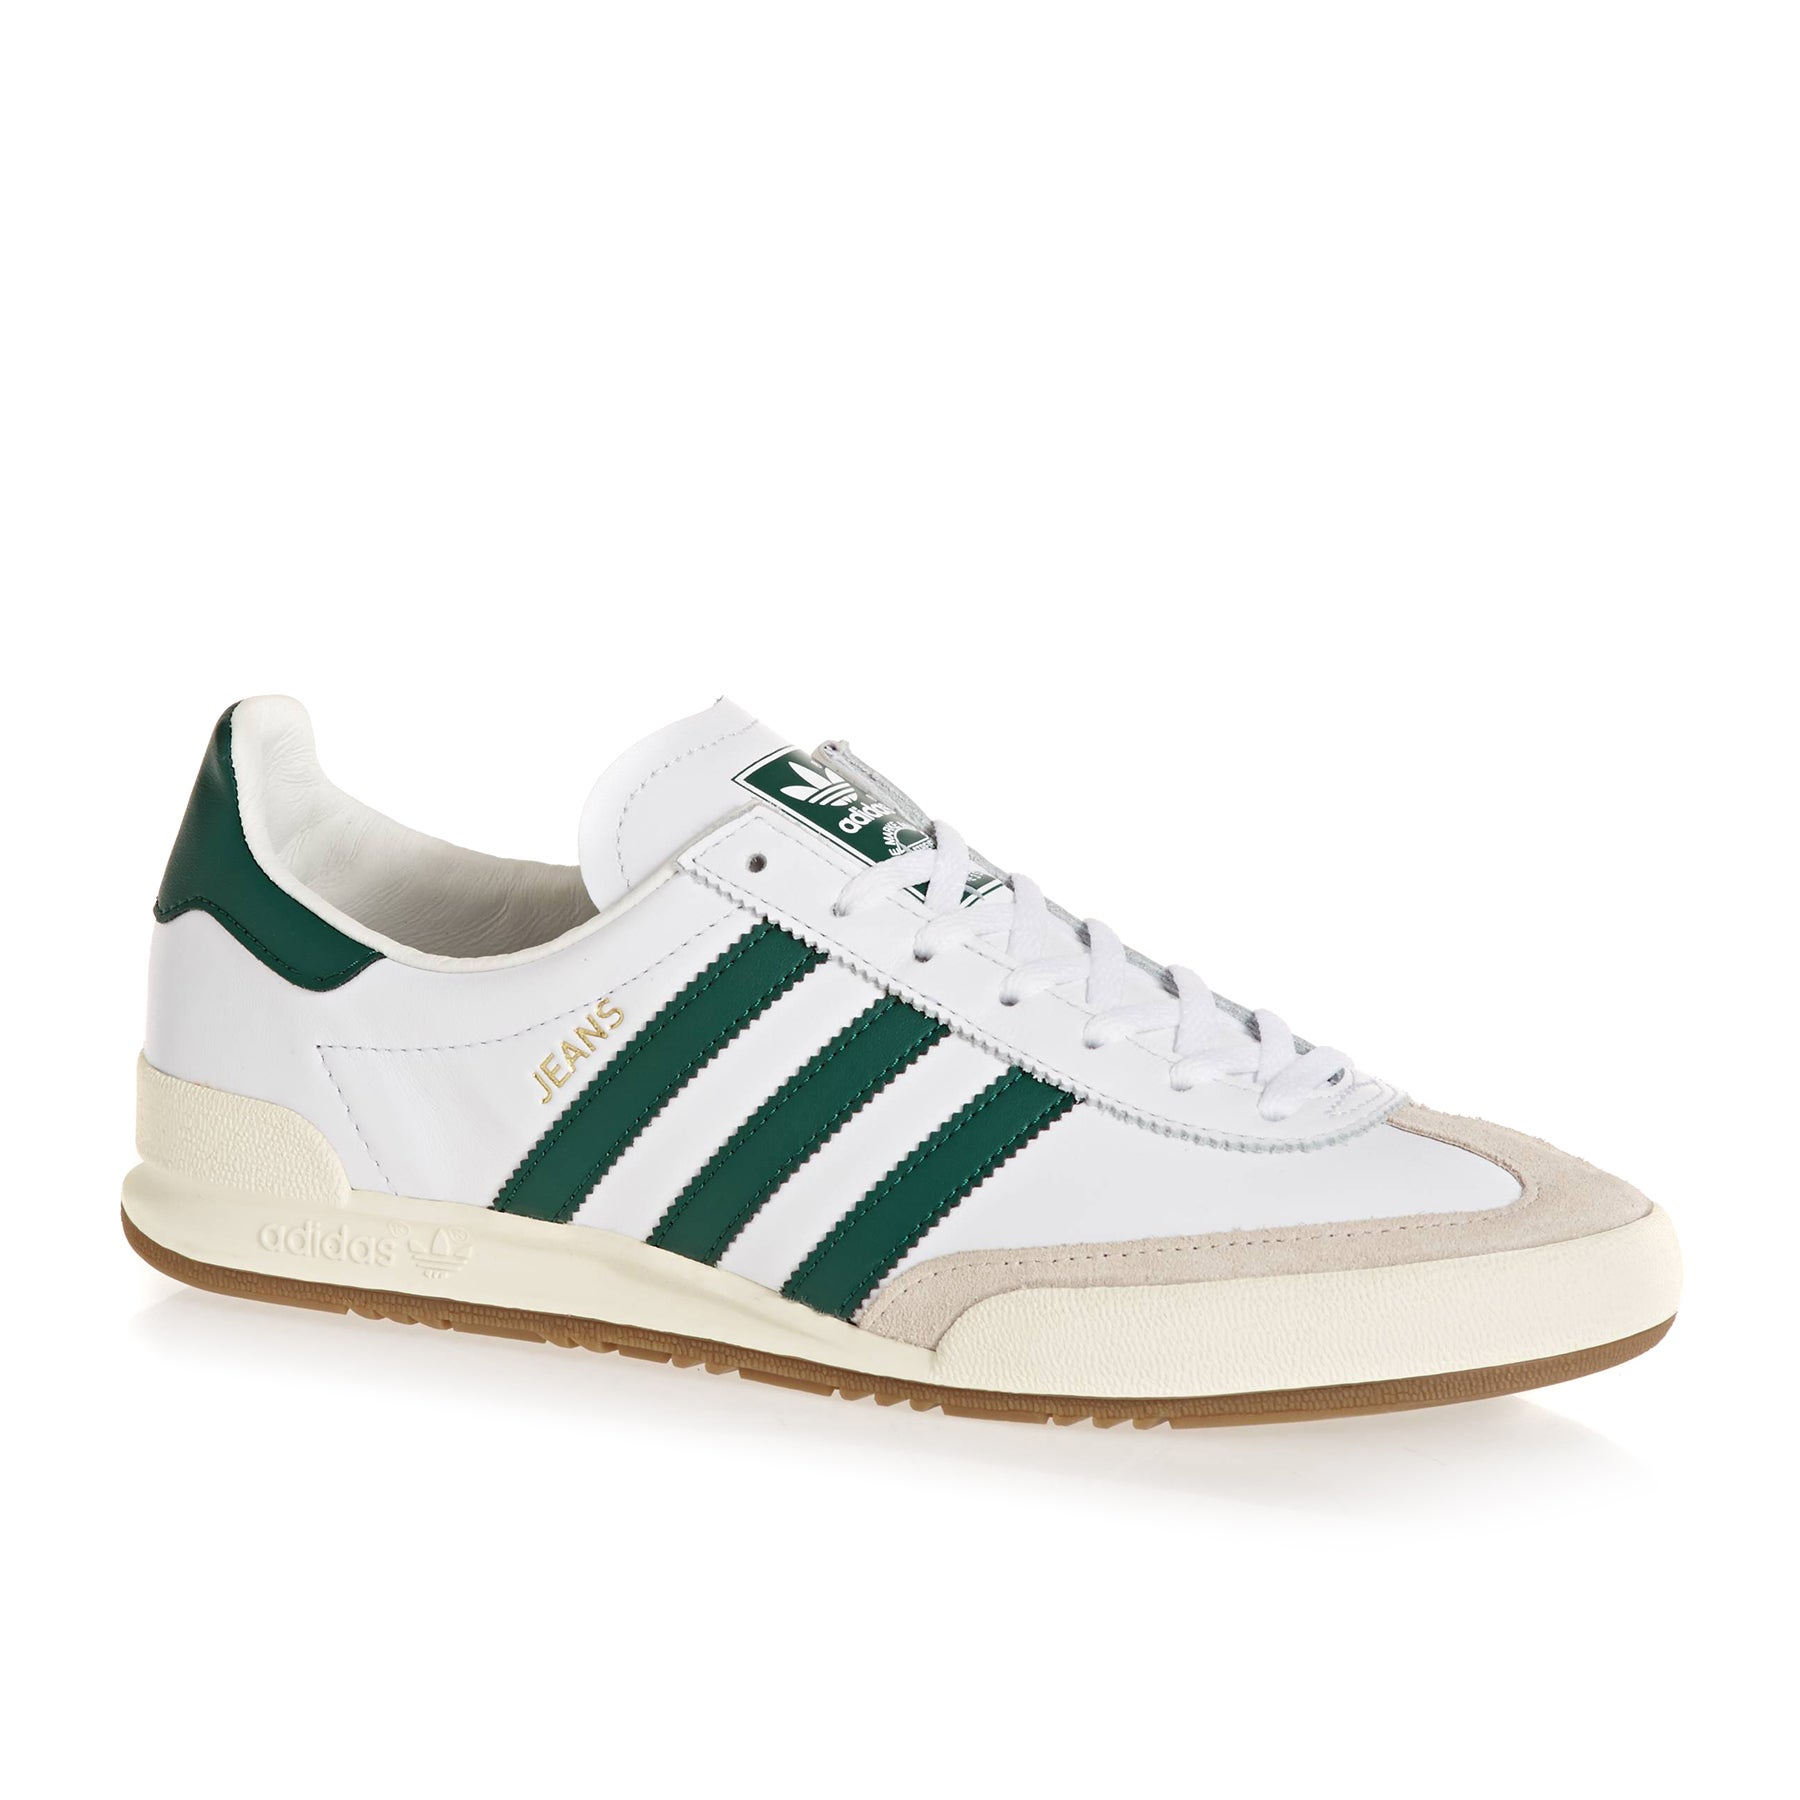 Adidas Originals Jeans Shoes